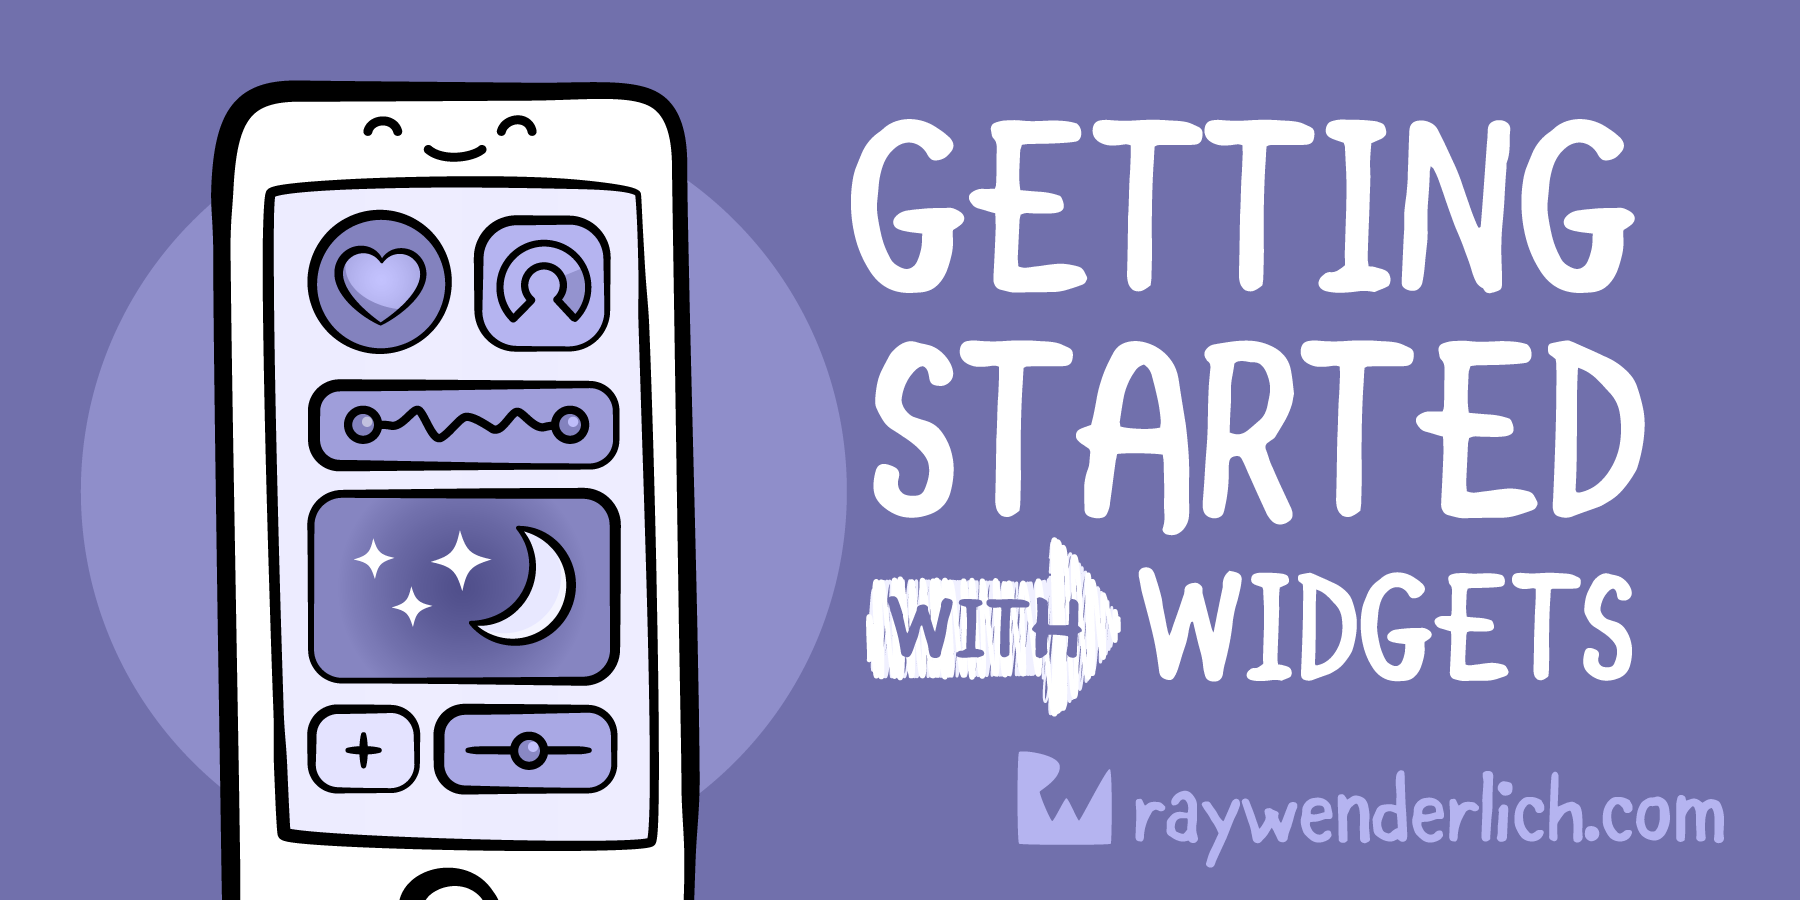 Getting Started With Widgets [FREE]